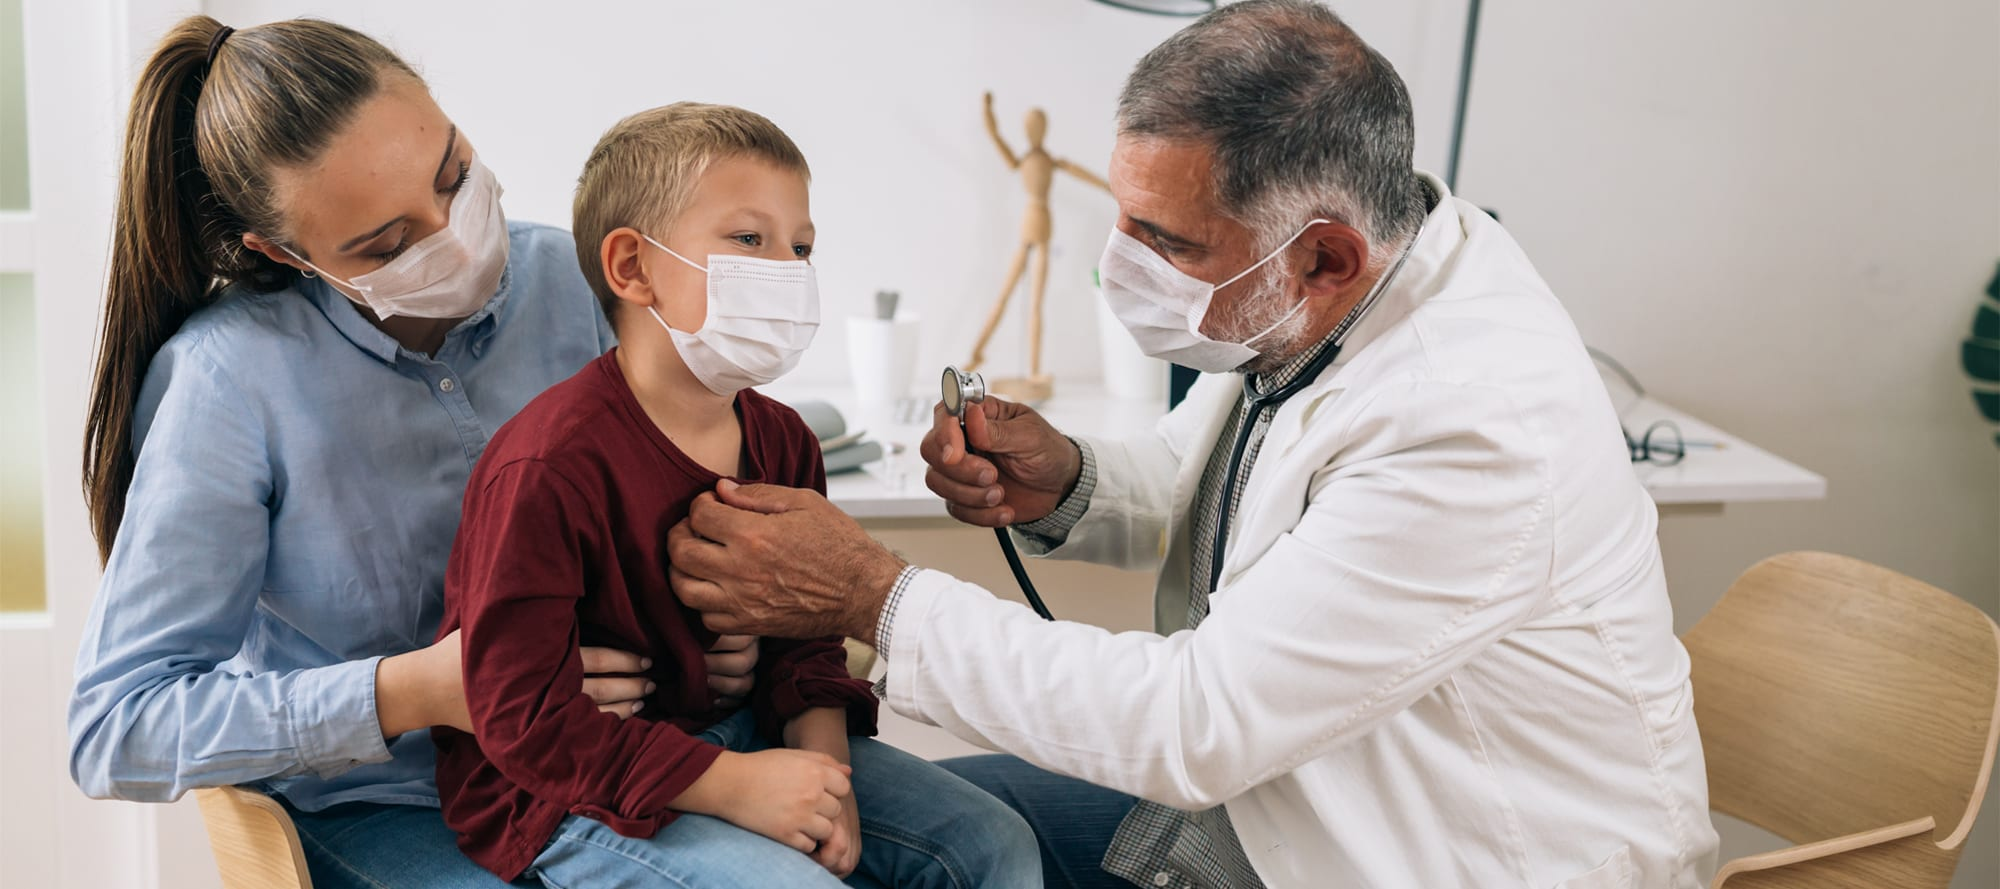 Doctor evaluating health of child